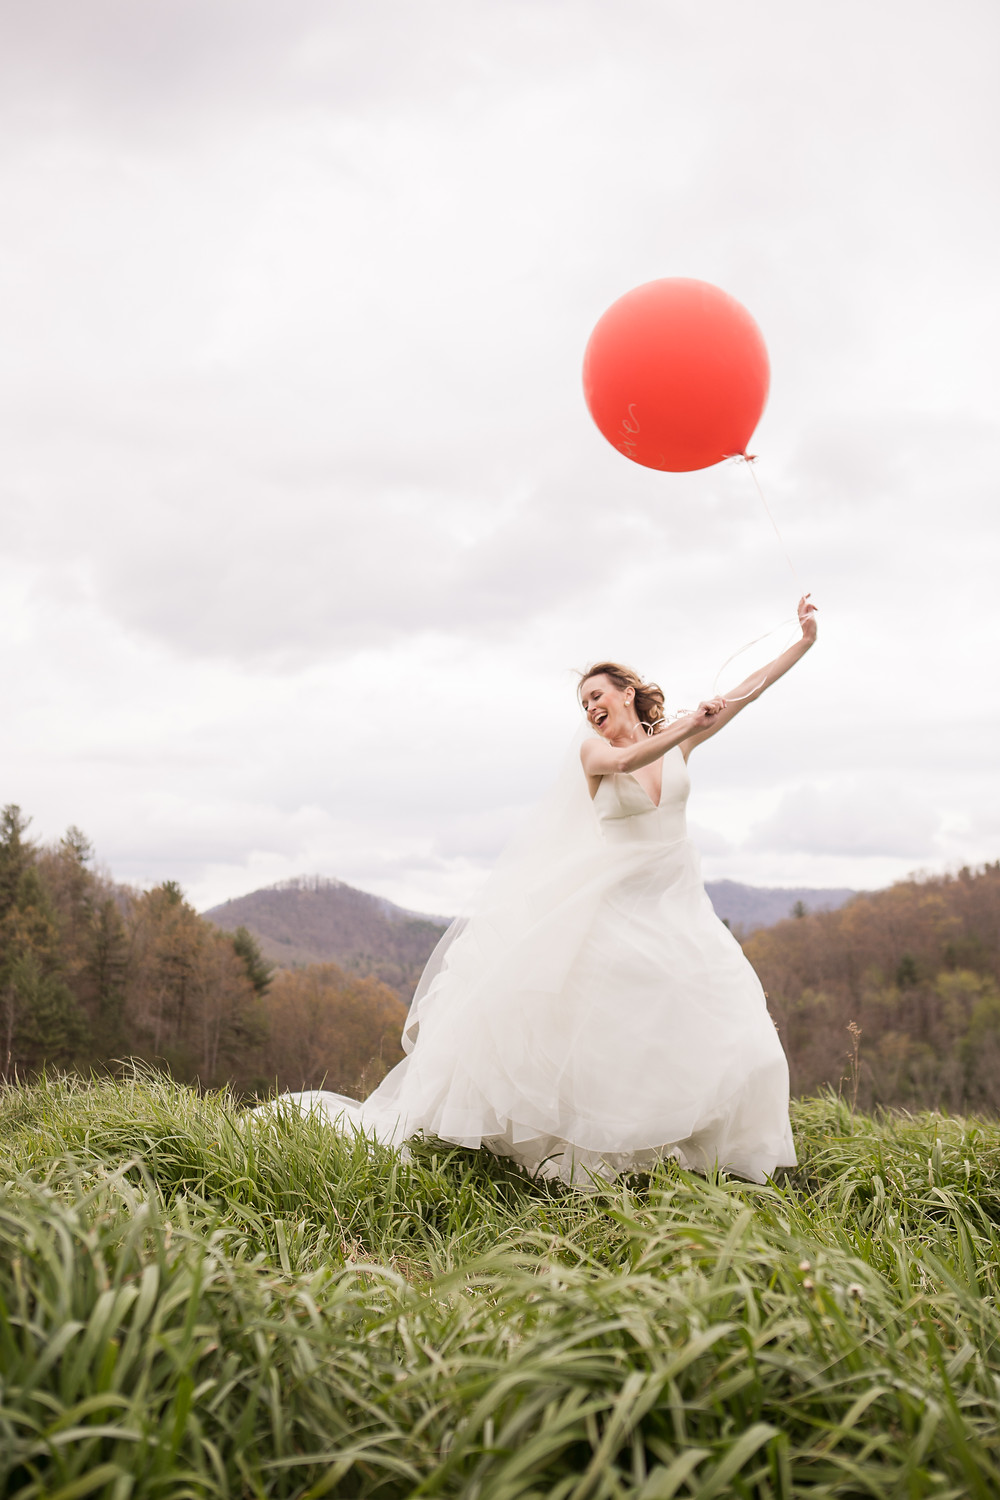 Bride running in a mountain meadow with a round red balloon